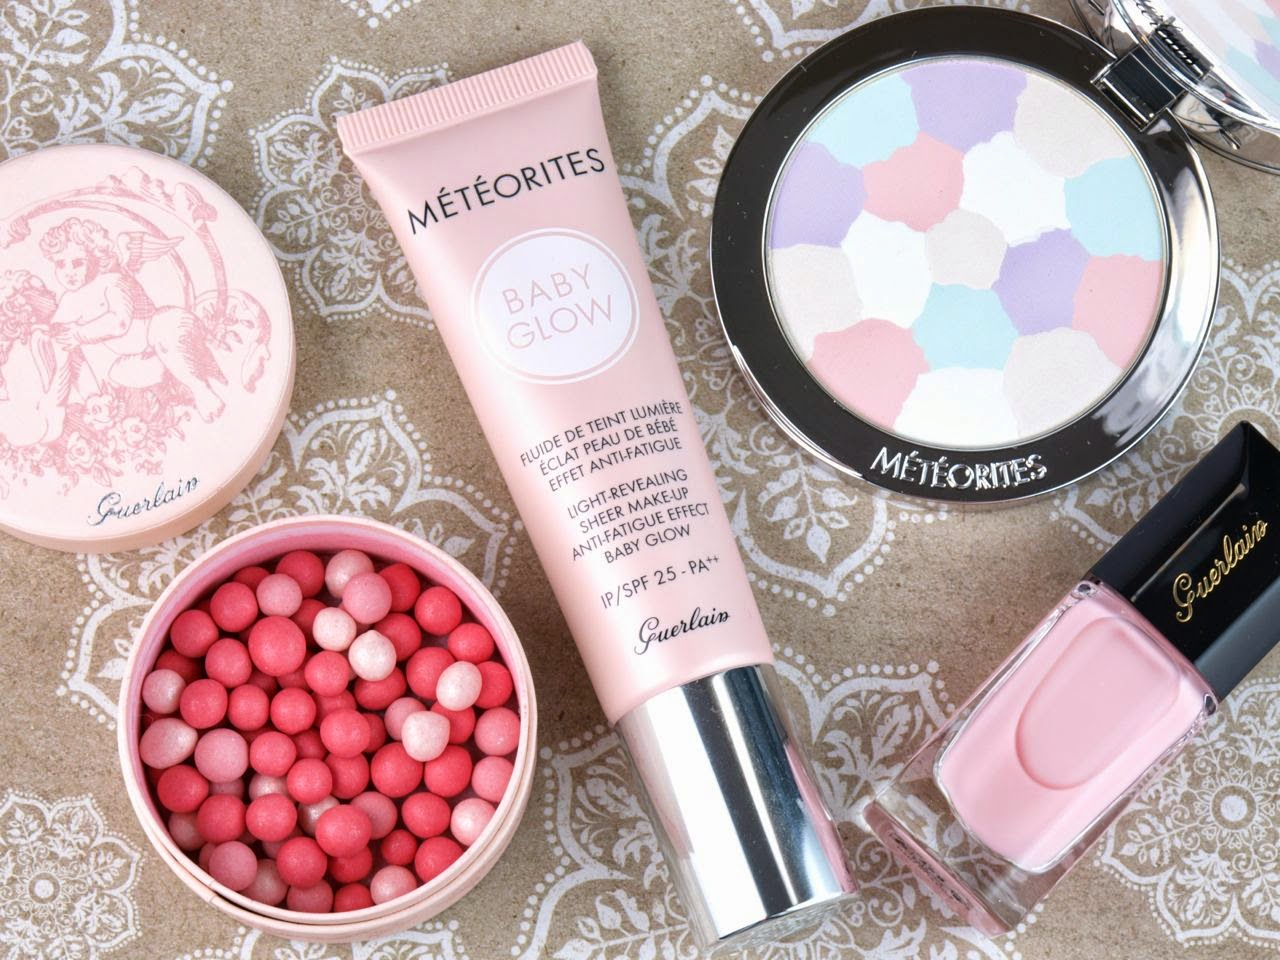 Guerlain Spring 2015 Les Tendres Collection: Review and Swatches